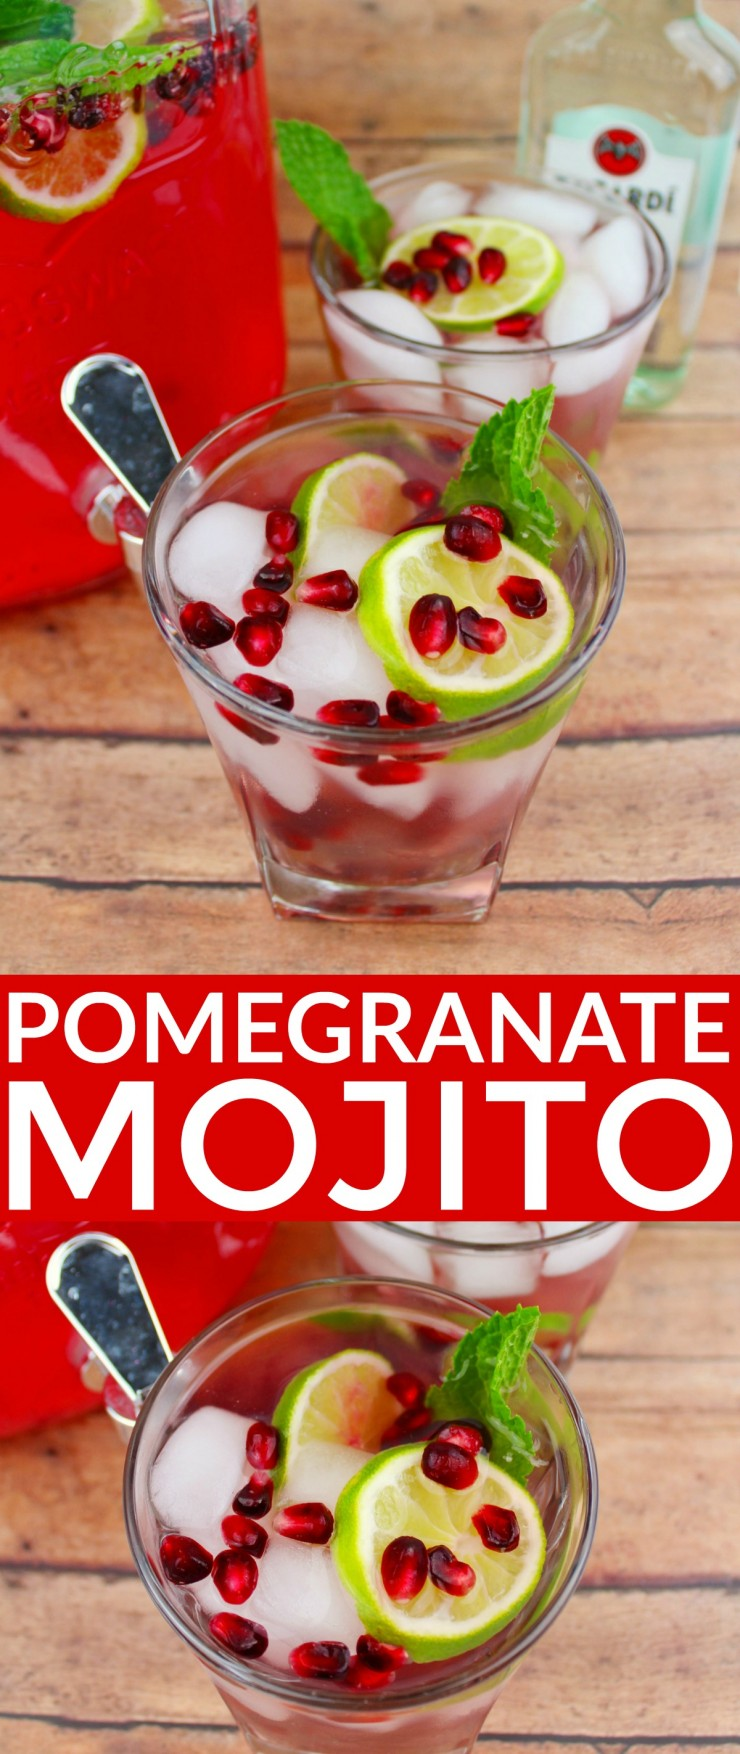 This Pomegranate Mojito is a festive winter cocktail perfect for serving at holiday parties. It is delicious and sure to be a hit at your New Years eve bash or for pre-Christmas dinner drinks.